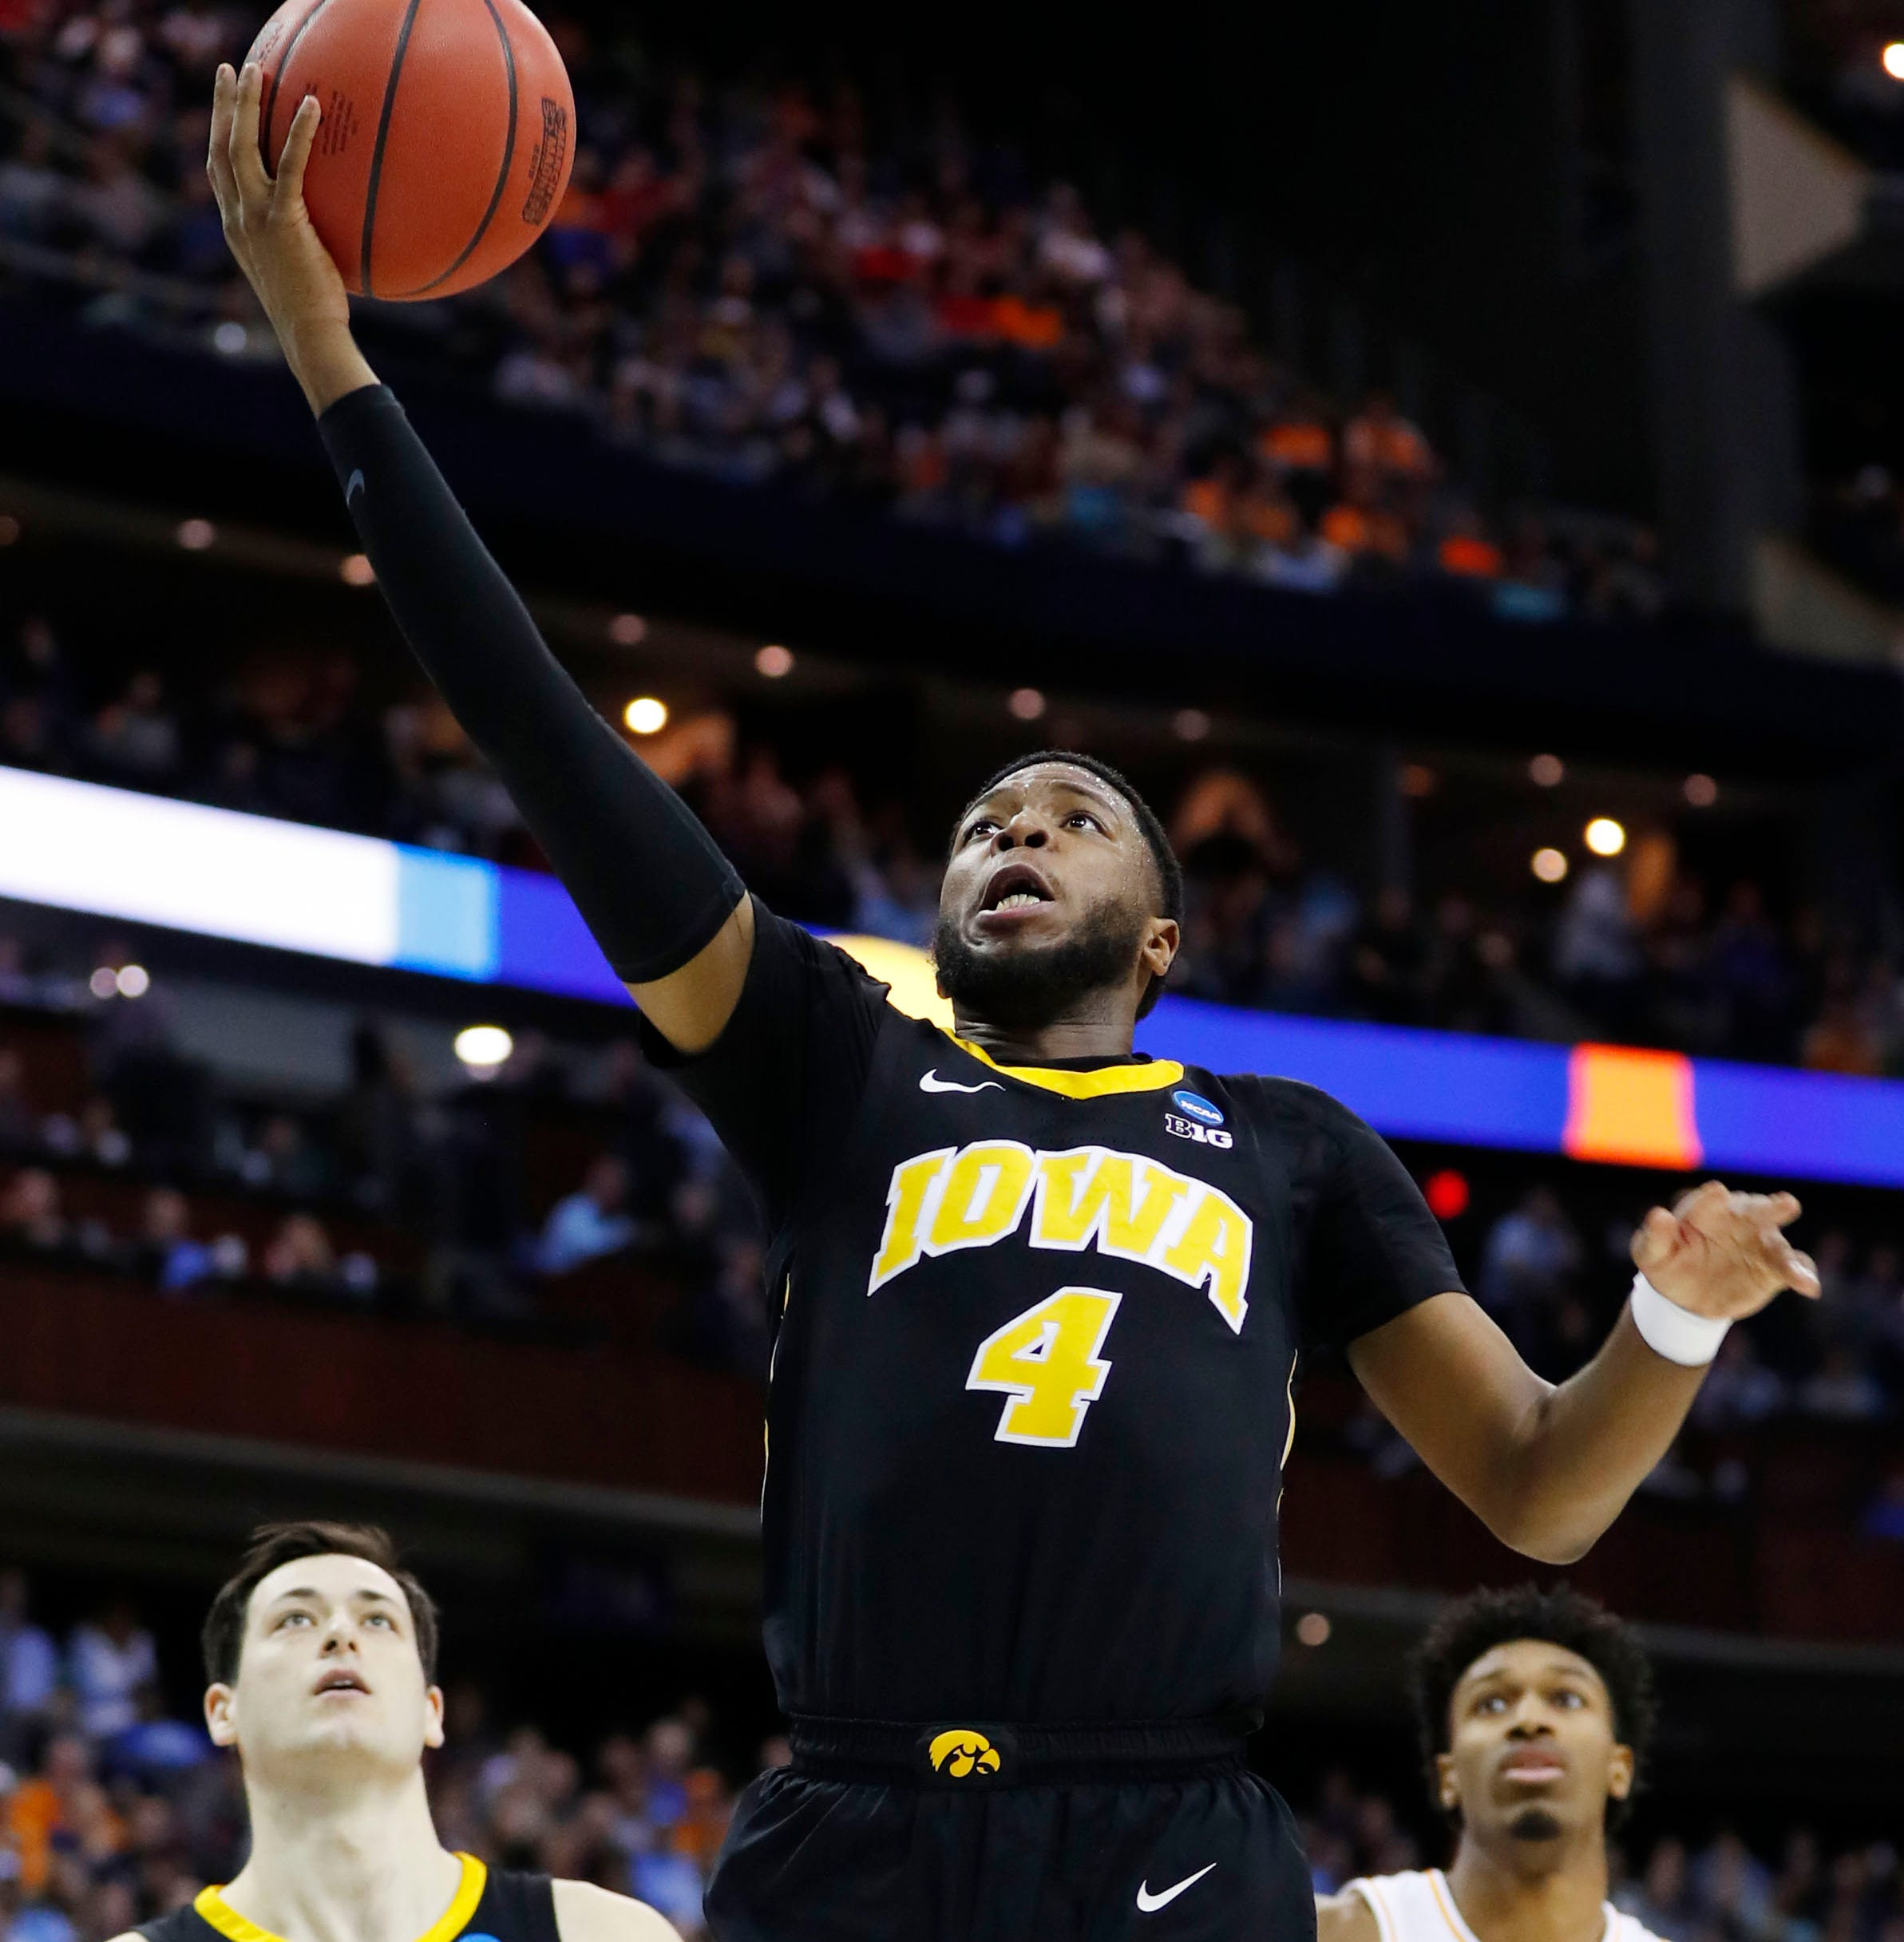 Isaiah Moss will transfer from Iowa Hawkeye basketball team